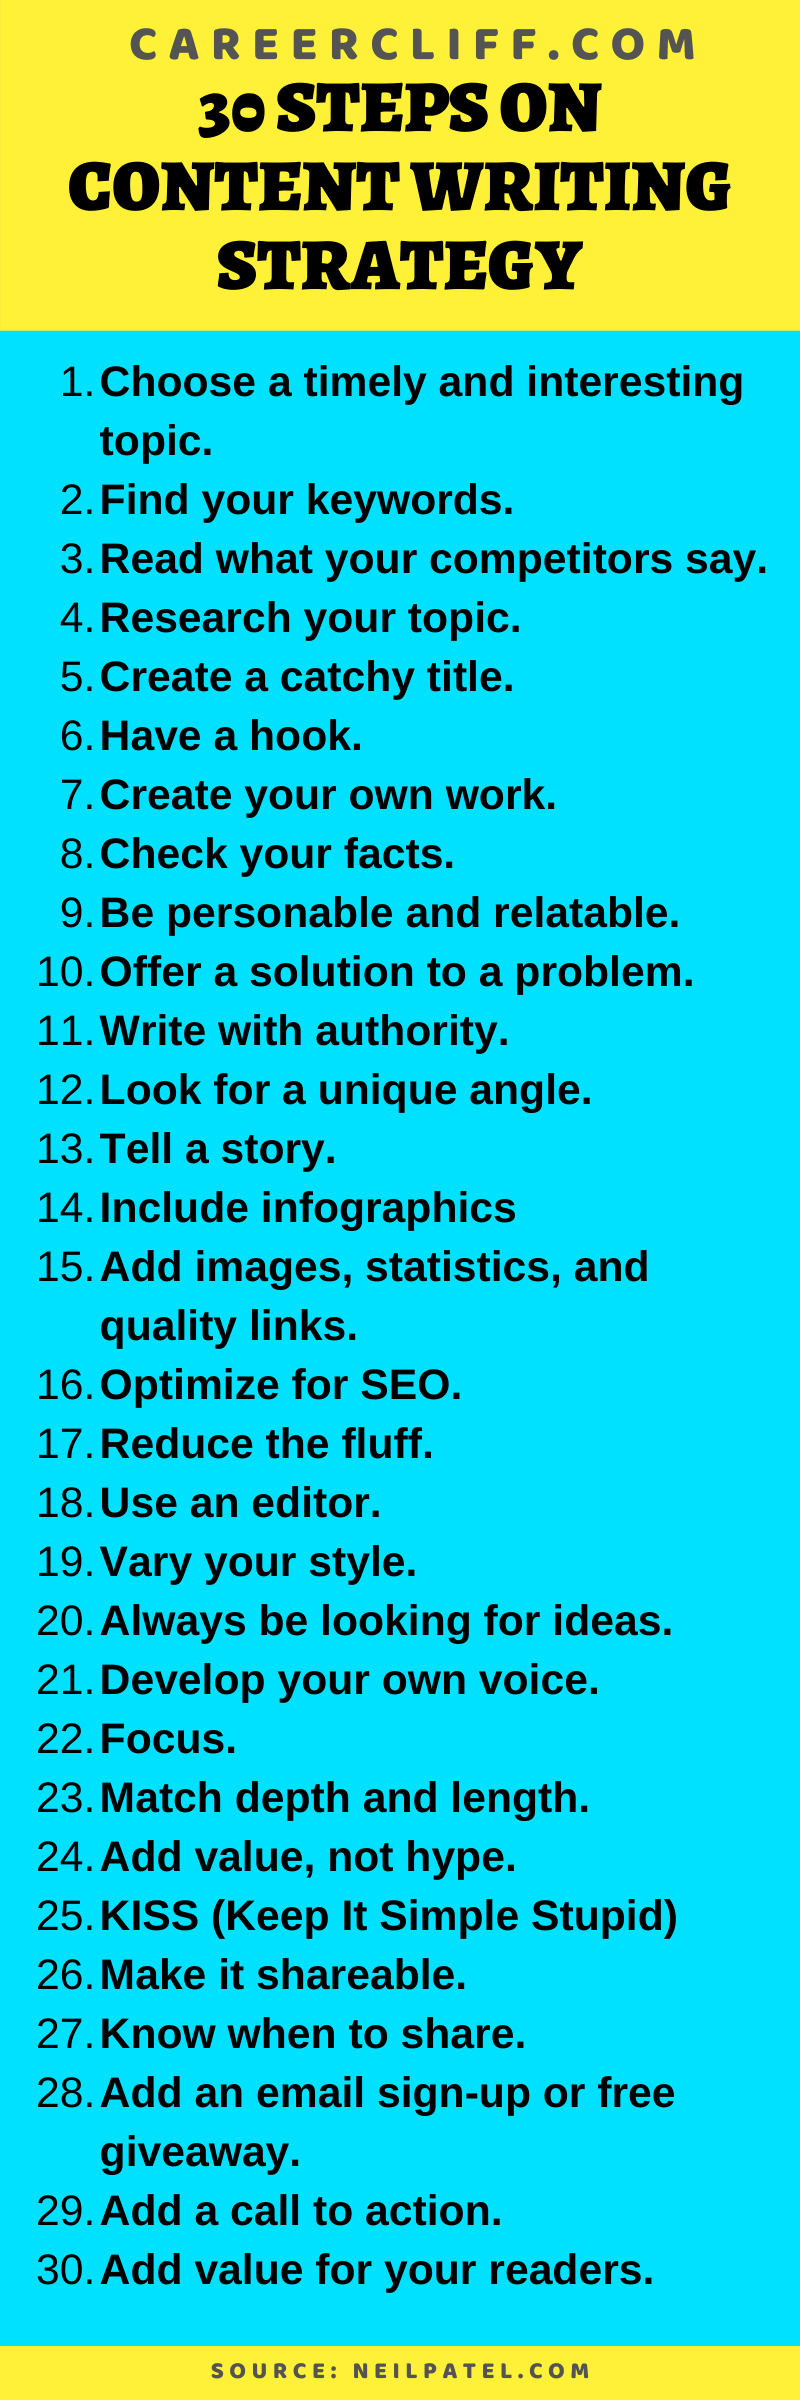 article writing tips feature writing tips article writing tips for students tips for writing a good story editorial writing tips article writing tips for beginners op ed tips tips for writing an op ed tips for writing a newspaper article tips to write a good article tips for summarizing an article article writing tips and tricks tips for writing a scientific paper tips for writing scientific papers tips for writing article article writing tips for class 10 tips to summarize an article tips to write an article in english textbroker writing sample tips 10 tips for writing a truly terrible journal article tips for article writing class 10 marketing articles 2021 classic marketing articles marketing articles topics how to write a business article interesting marketing articles 2018 sales and marketing articles how to write an article about a company marketing articles 2021 business article sample business article template how to write a business publication article about your company how to write a content for a business business blog sample marketing articles marketing articles 2021 marketing articles topics research articles on marketing articles on marketing management article marketing strategy how to sell my articles online articles about selling business article format how to write a comprehensive article how to write a 1500 word blog post example of a good article create an article online blog articles examples how to write articles for websites what to write an article on how to write absolutely addictive articles writing for marketing course marketing content writing examples content marketing copy compelling marketing write briefly mail order business hubspot content writing how to write a good marketing articles marketing writing email copywriting content writing agency marketing copy marketing copywriter seo write for us the adweek copywriting handbook write for us digital marketing b2b copywriting writing a marketing plan digital copywriting marketing conte